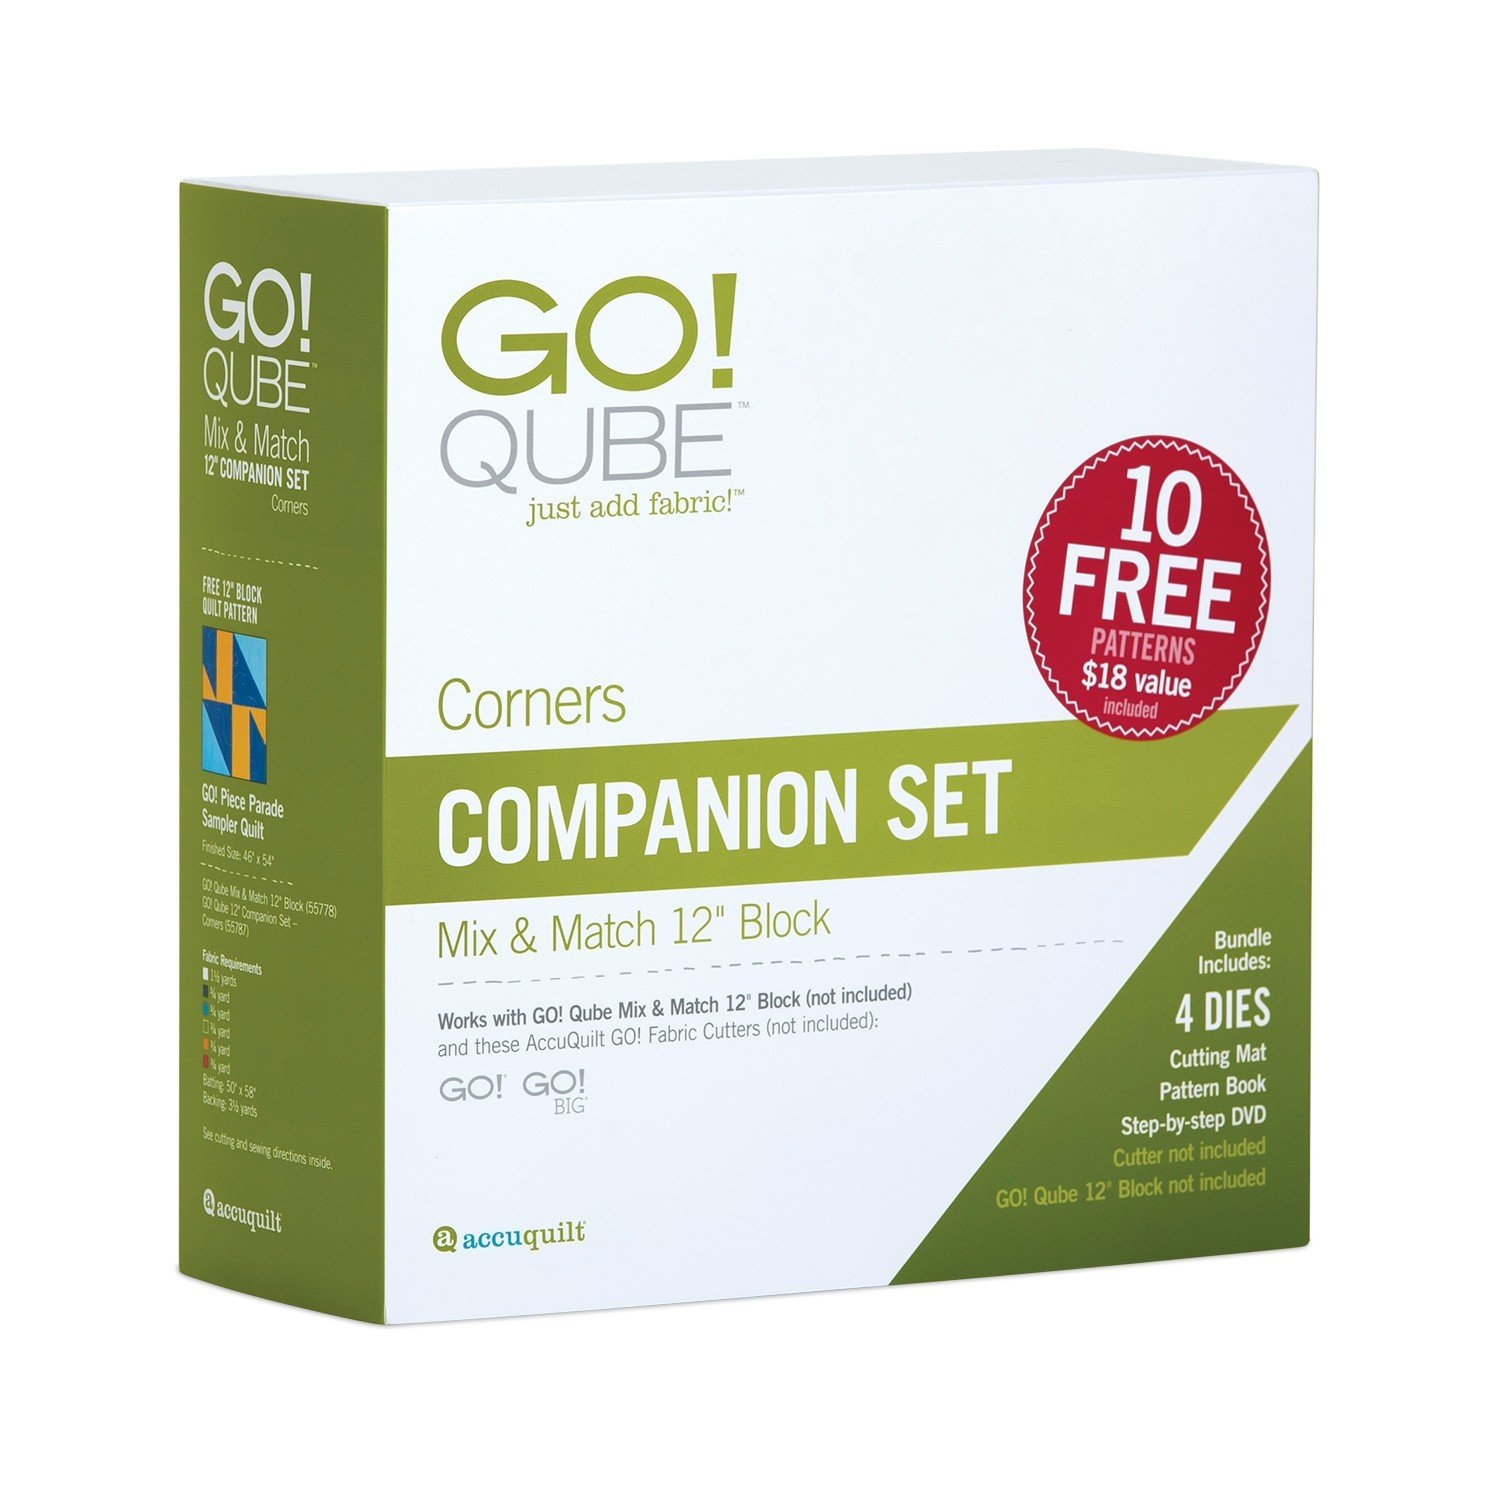 GO! Qube 12 Companion Set-Corners